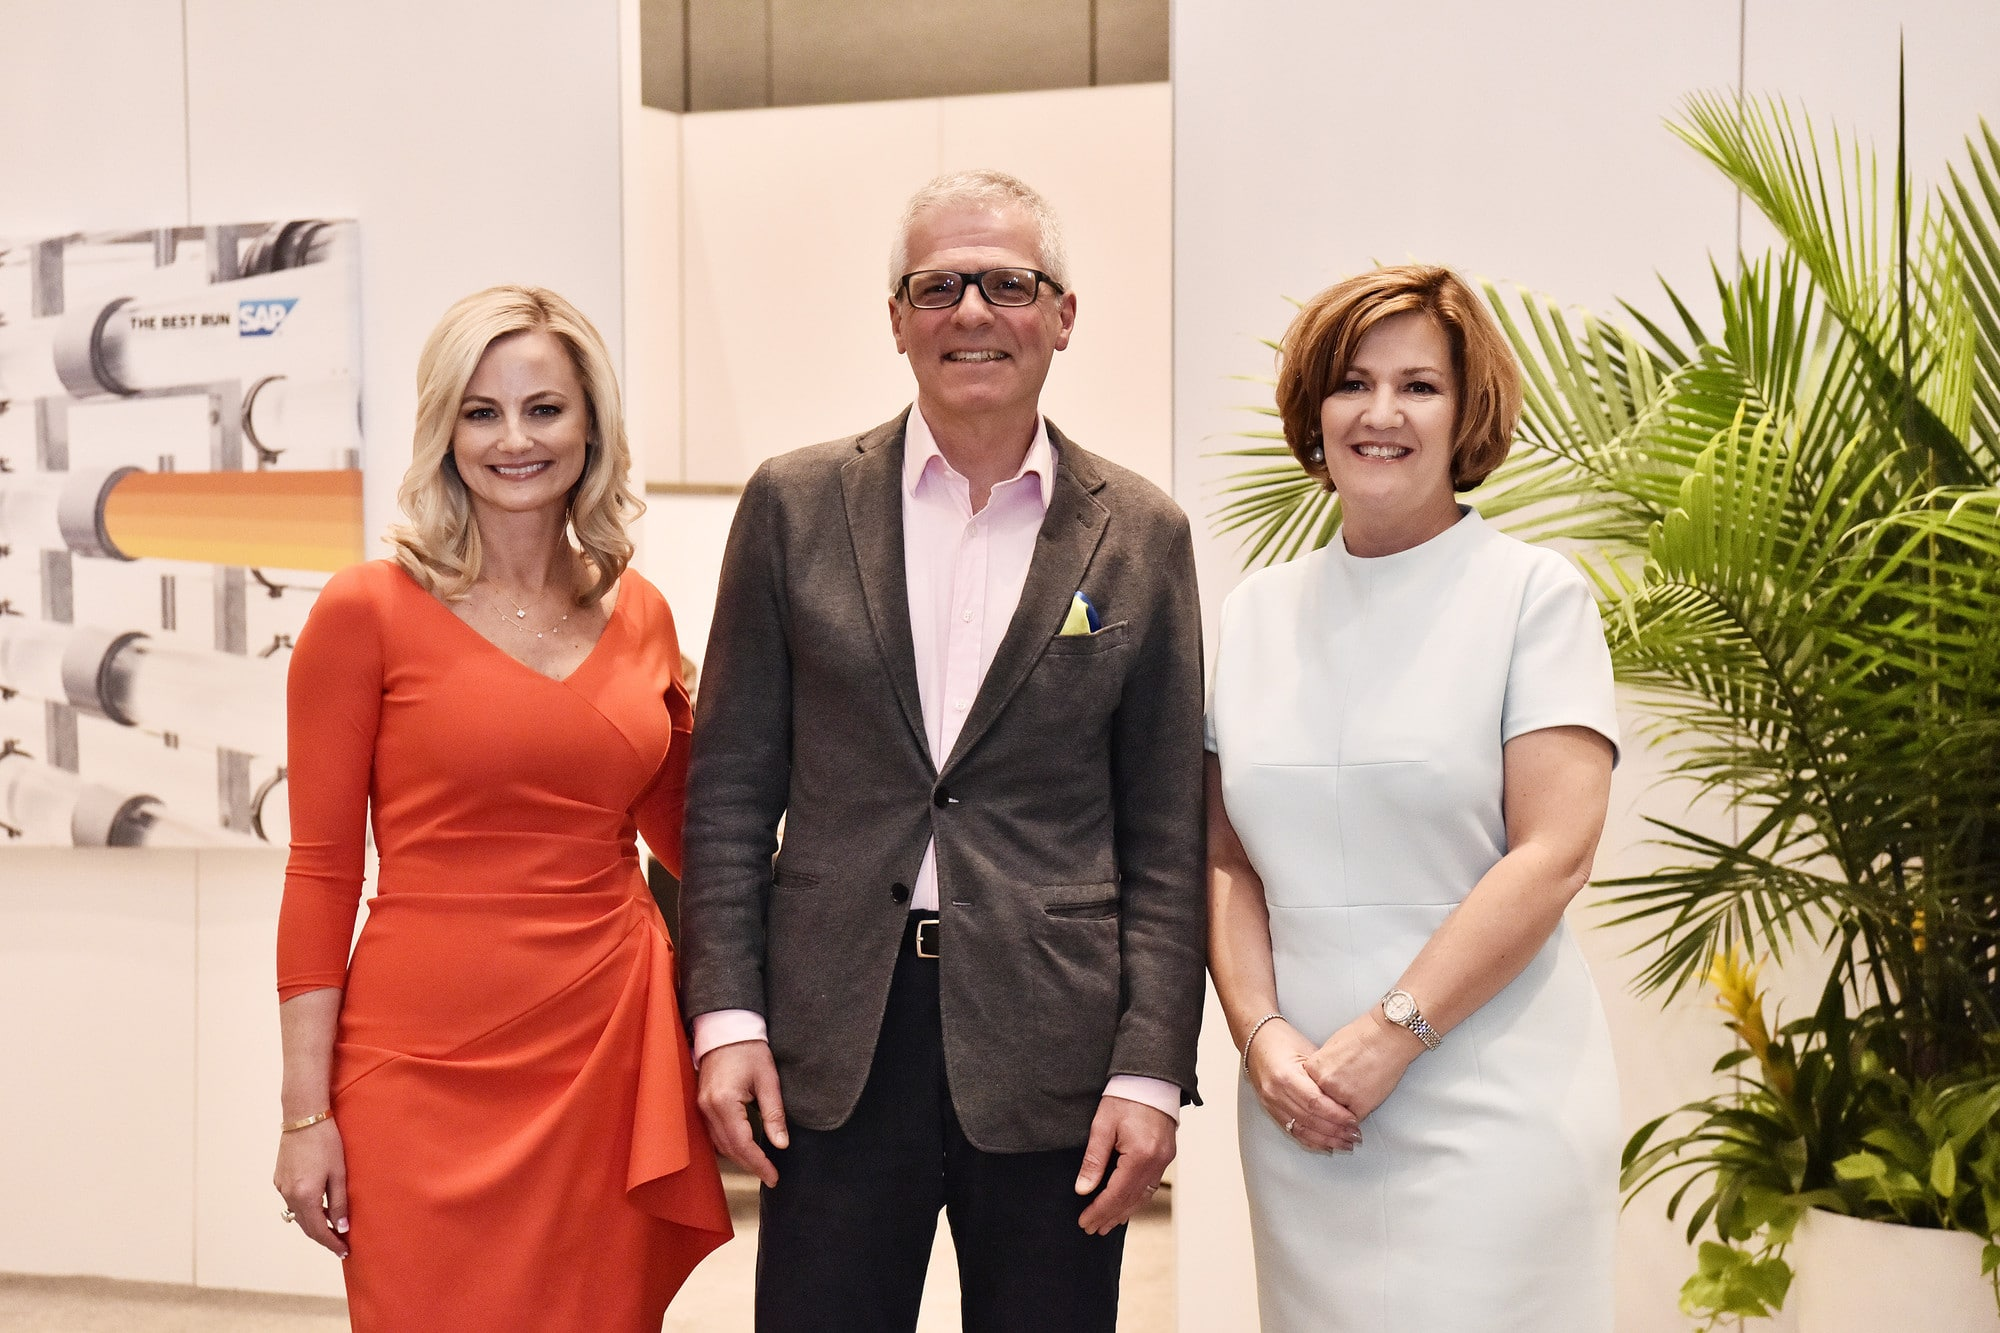 Picture of Michael Groves with (L) Alicia Tillman, Chief Marketing Officer, SAP and (R) Adaire Fox-Turner, Head of Global Customer Operations, SAP